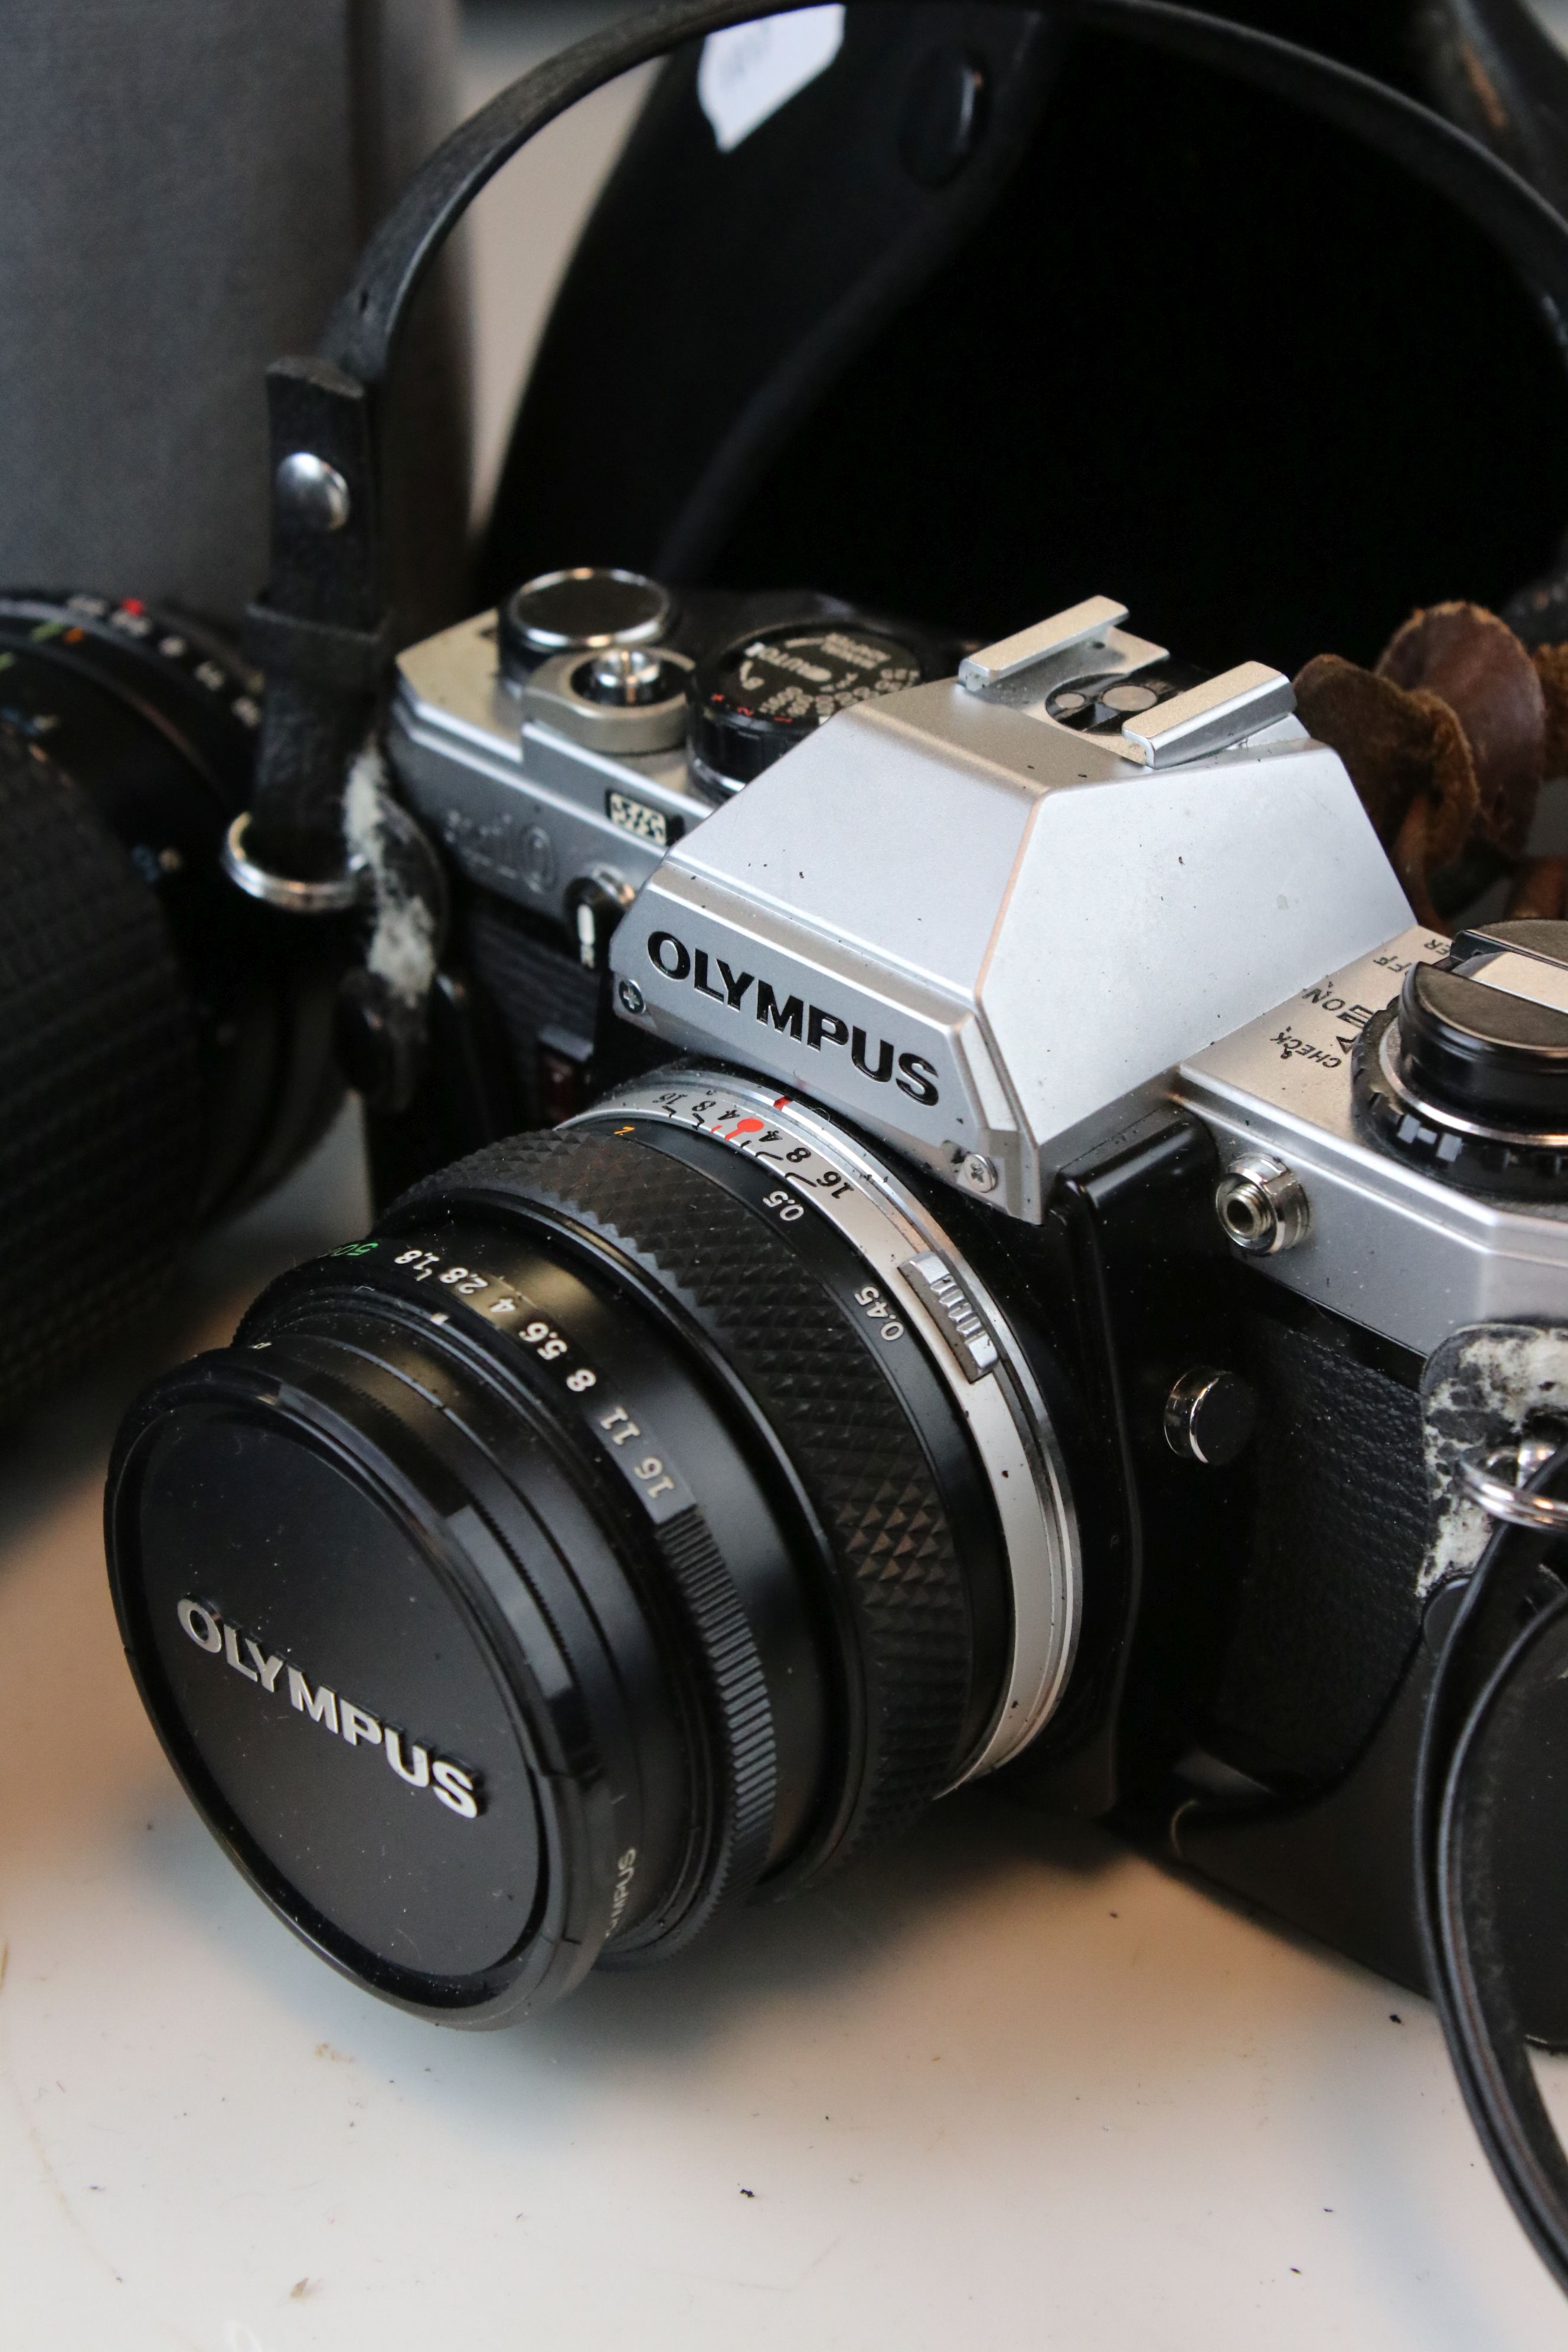 A collection of cameras and photographic equipment to include an Olympus OM10 35mm SLR camera. - Image 3 of 6